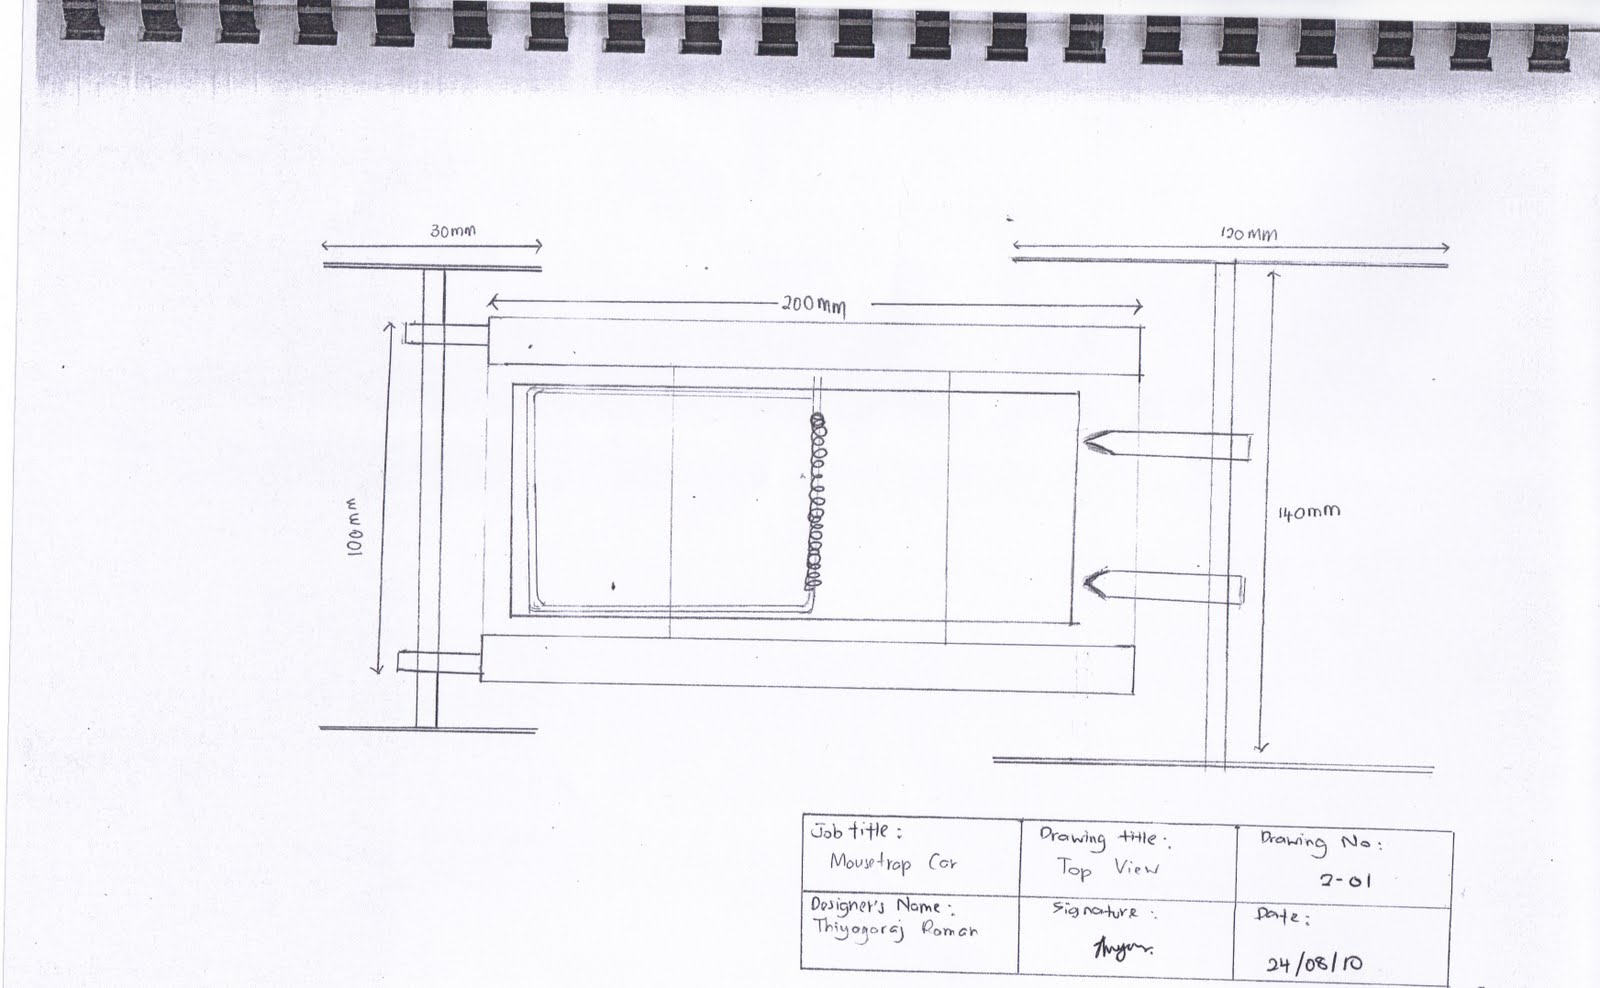 Mousetrap car diagram top view from auto wiring diagram today southern union inc mousetrap vehicle design documents rh southernunioninc blogspot com mousetrap car ideas mousetrap car blueprints malvernweather Gallery